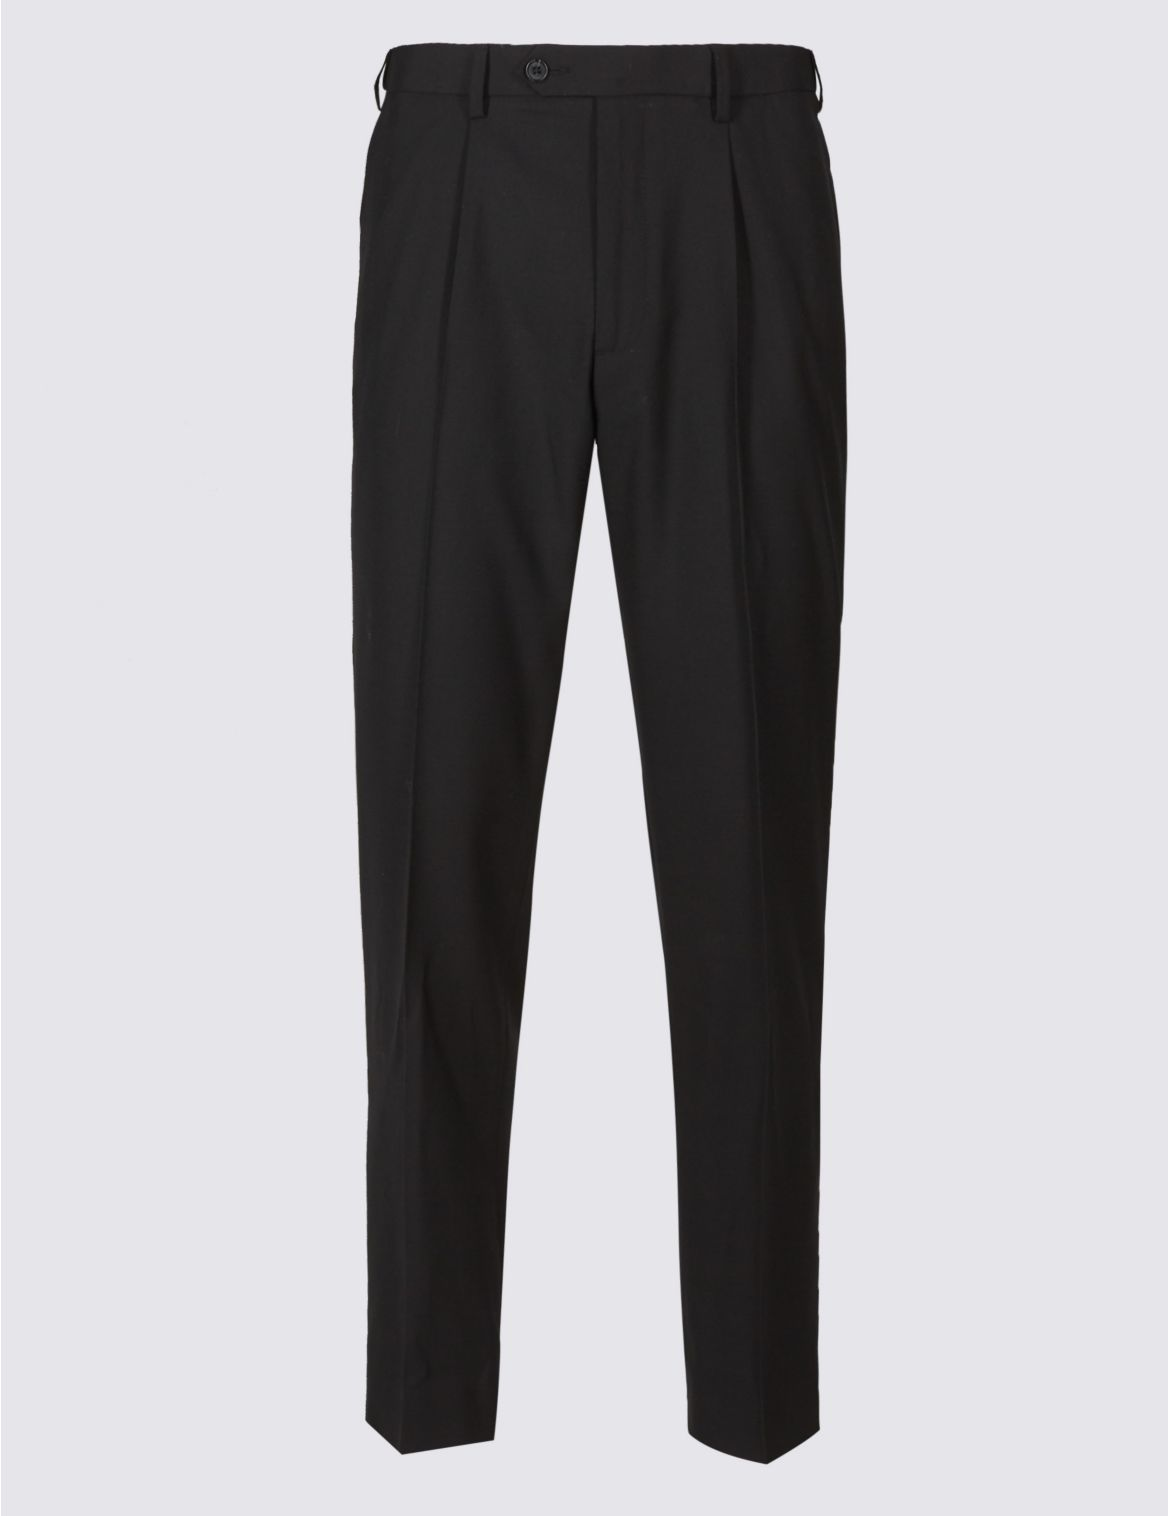 Tailored Wool Blend Single Pleated Trousers black